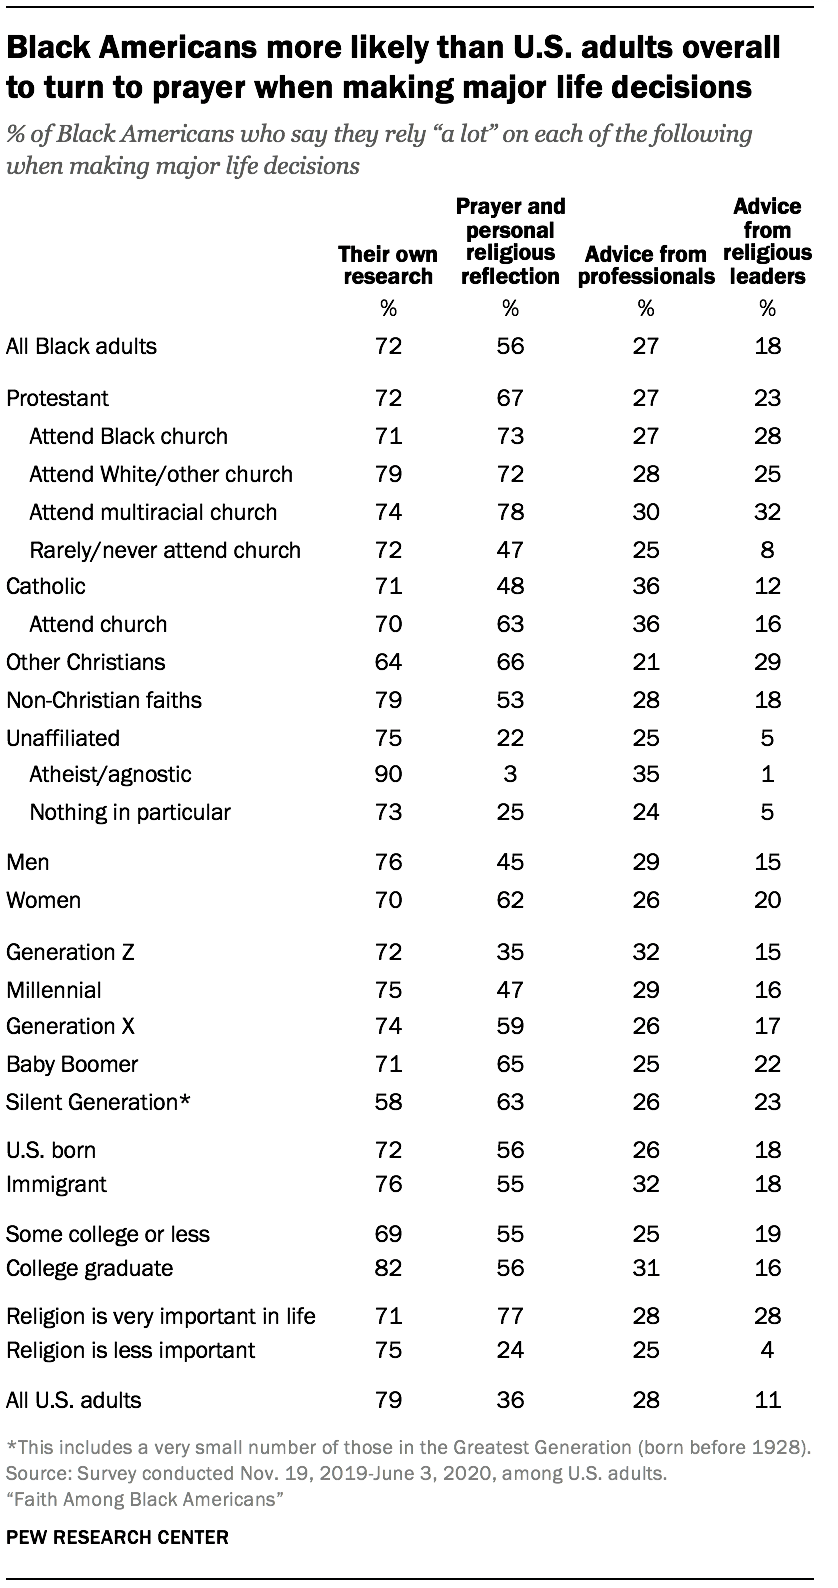 Black Americans more likely than U.S. adults overall to turn to prayer when making major life decisions